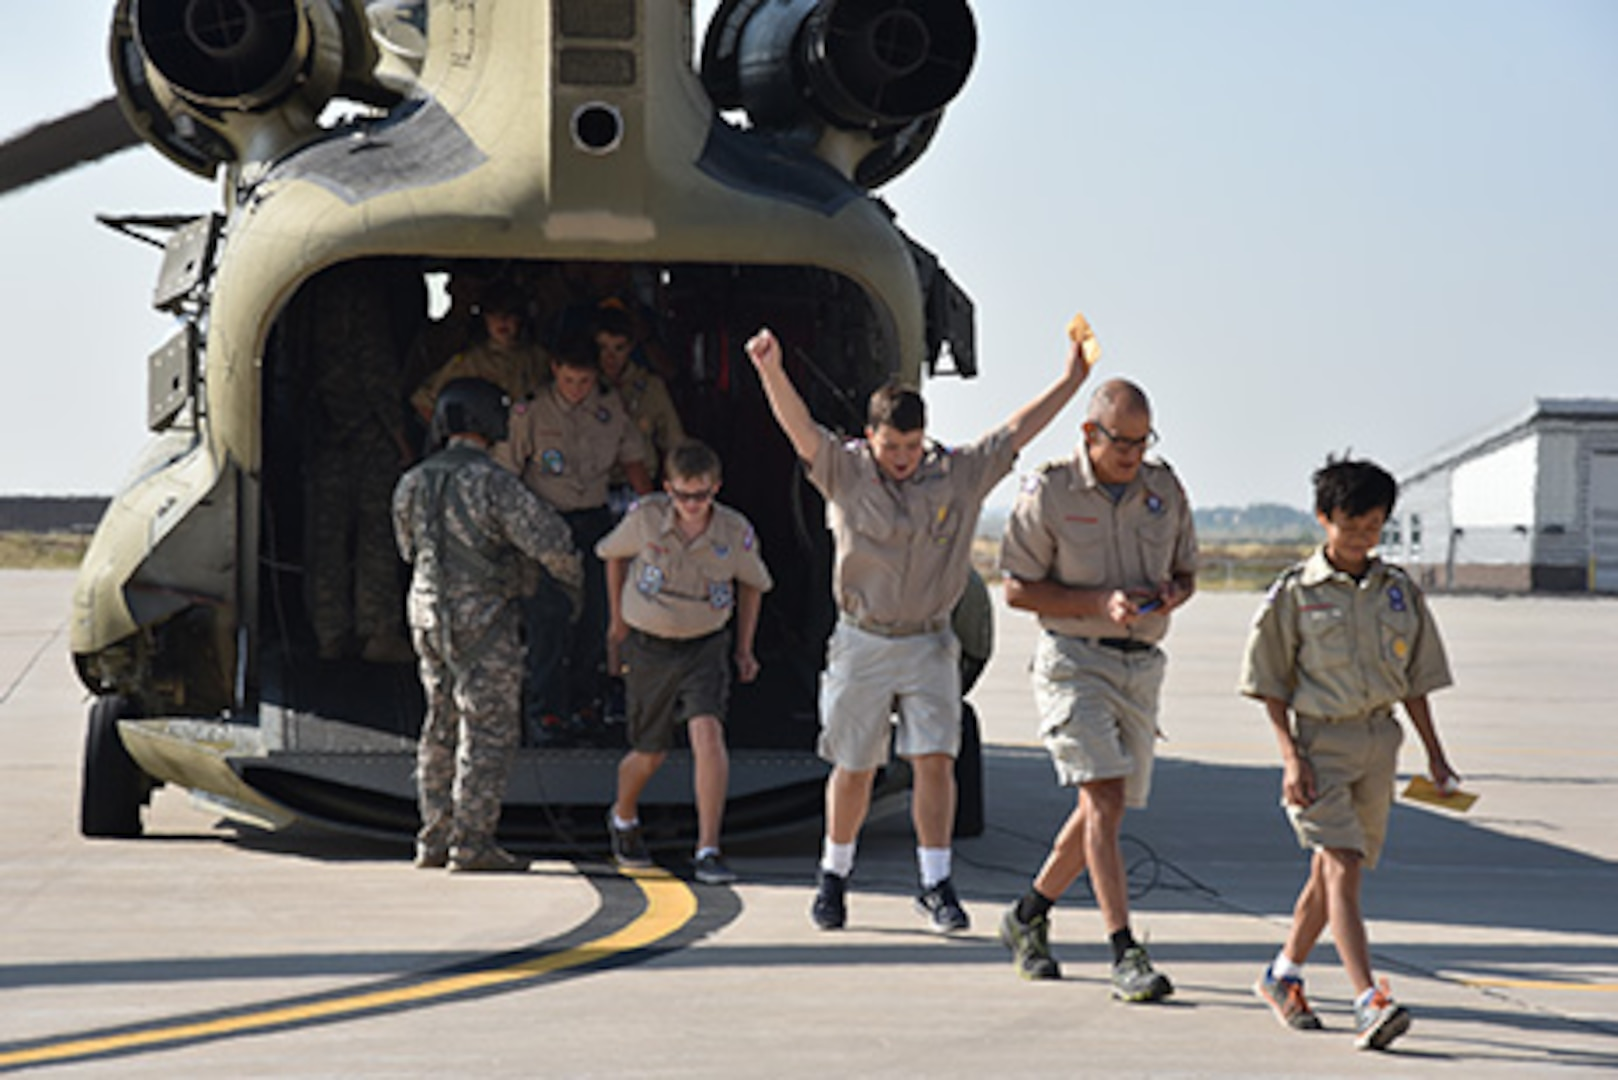 Colorado National Guard takes scouts to new heights at the Army Aviation Support Facility, Buckley Air Force Base, Aurora, Colo., July 30, 2016. (U.S. Army National Guard photo by Staff Sgt. Manda Walters/released).